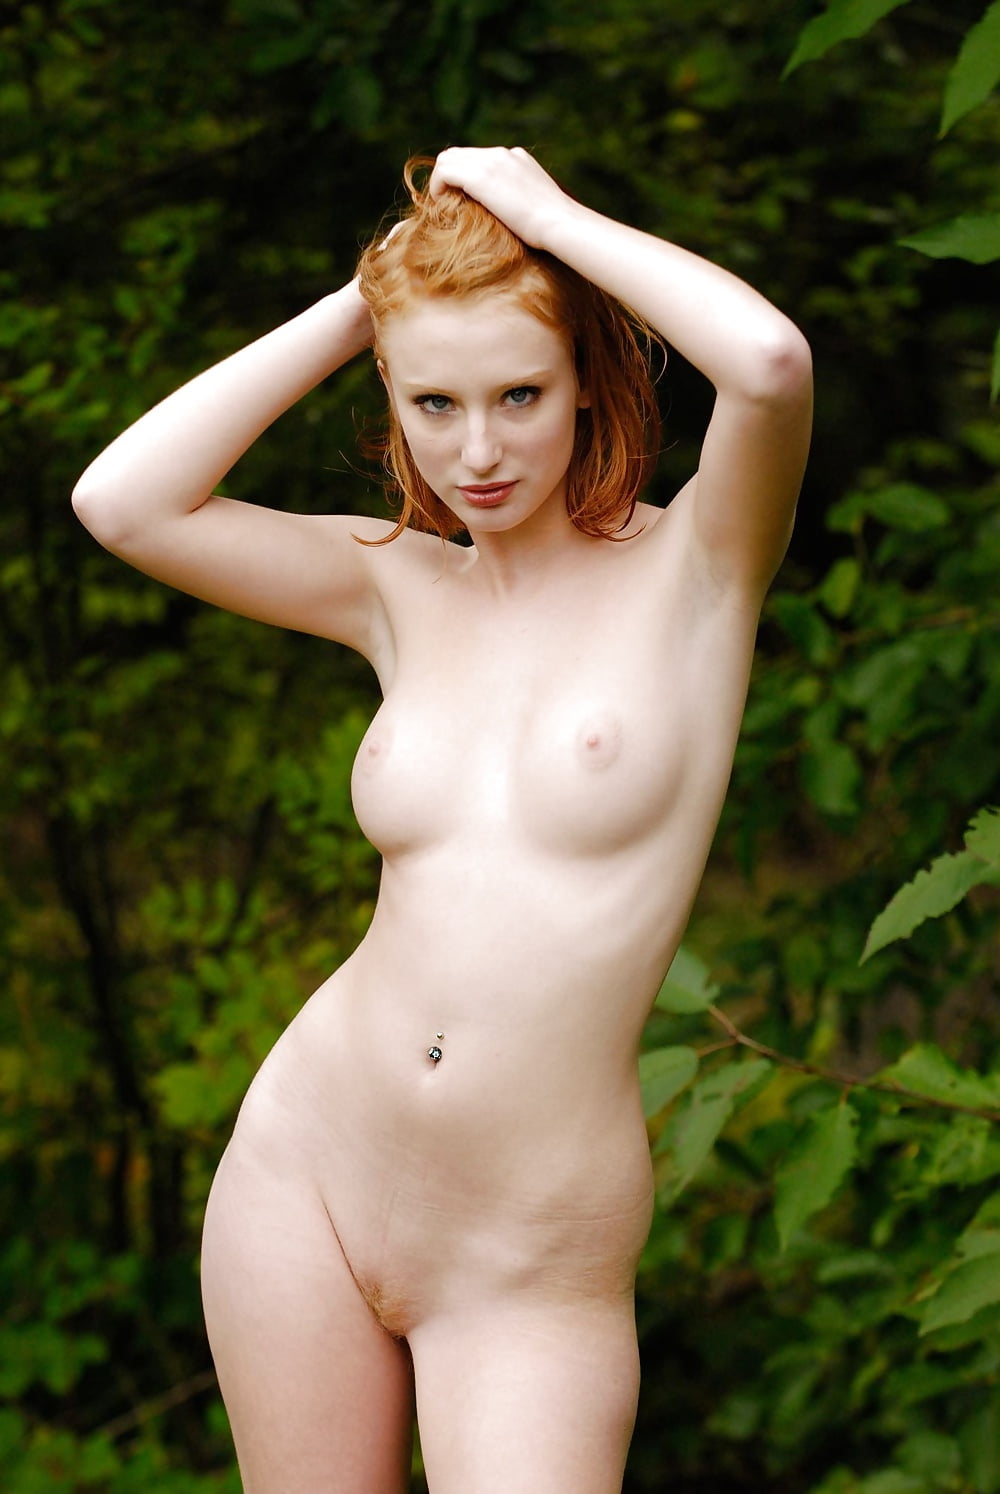 Nude ginger female — photo 6